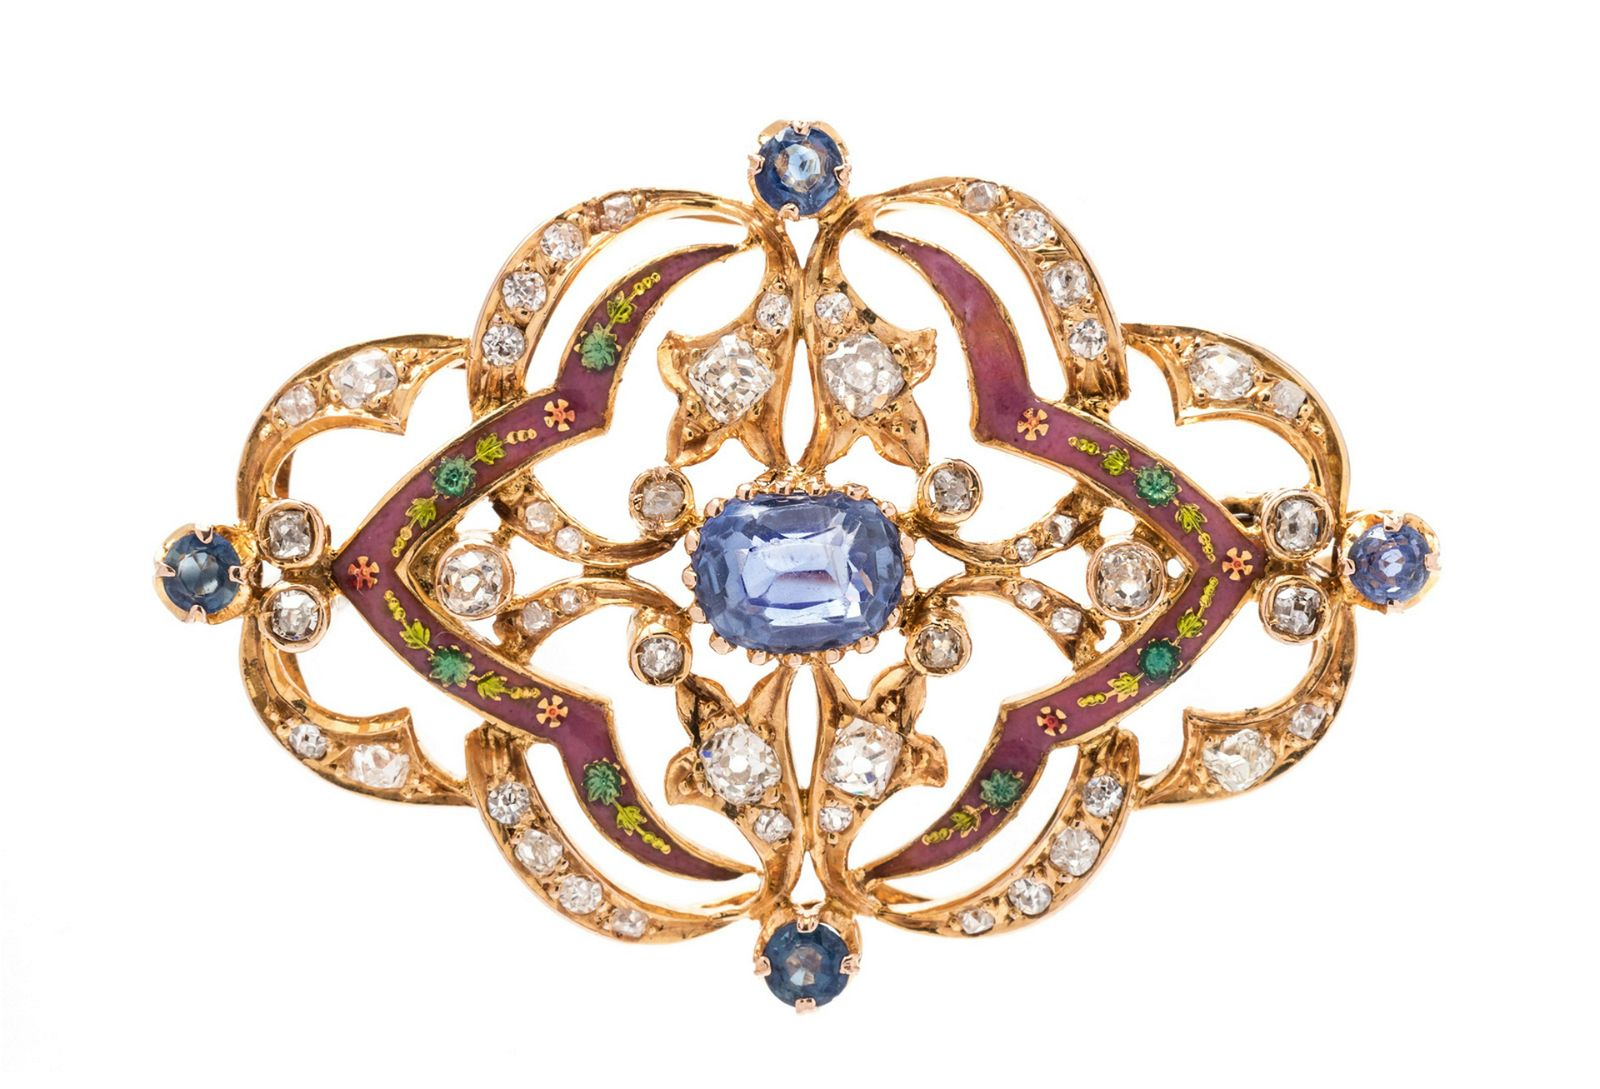 An Antique Yellow Gold, Sapphire, Diamond and